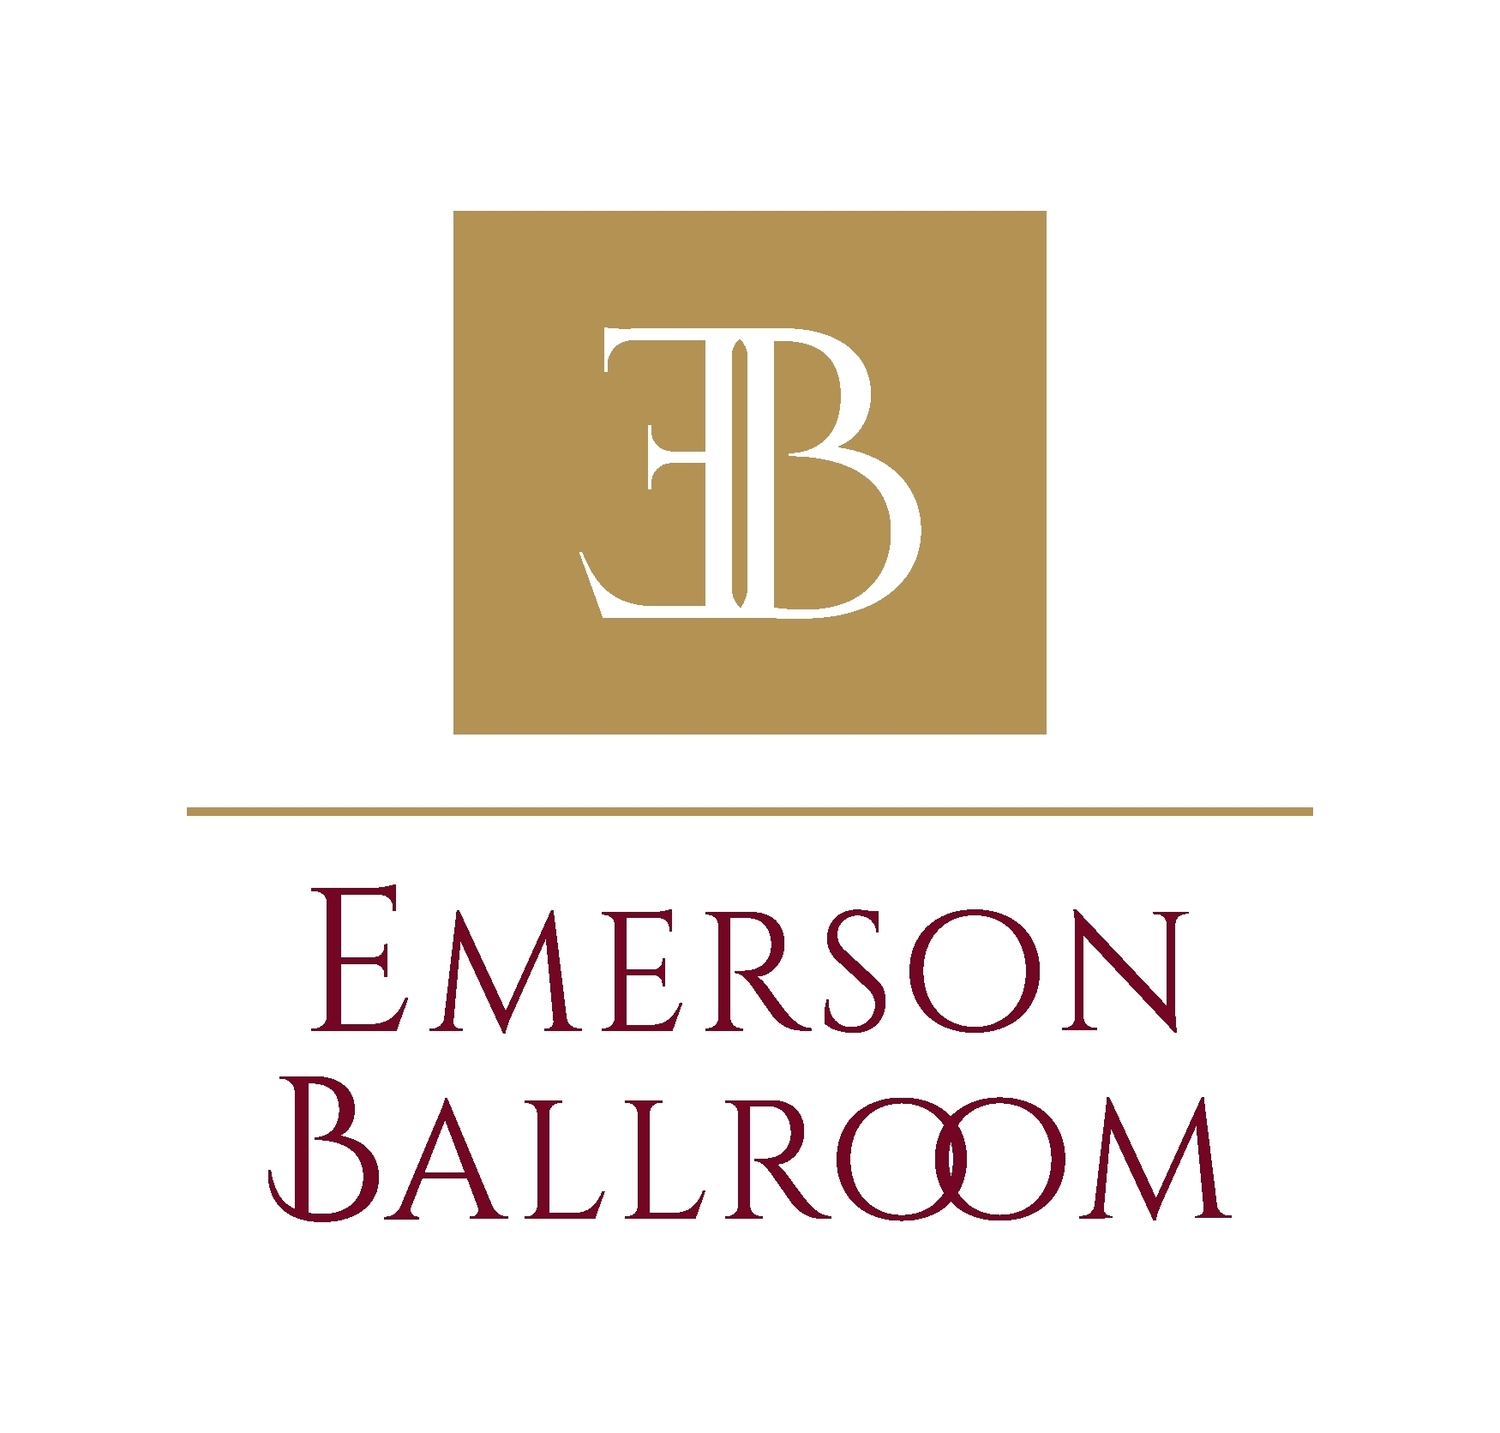 The Emerson Ballroom